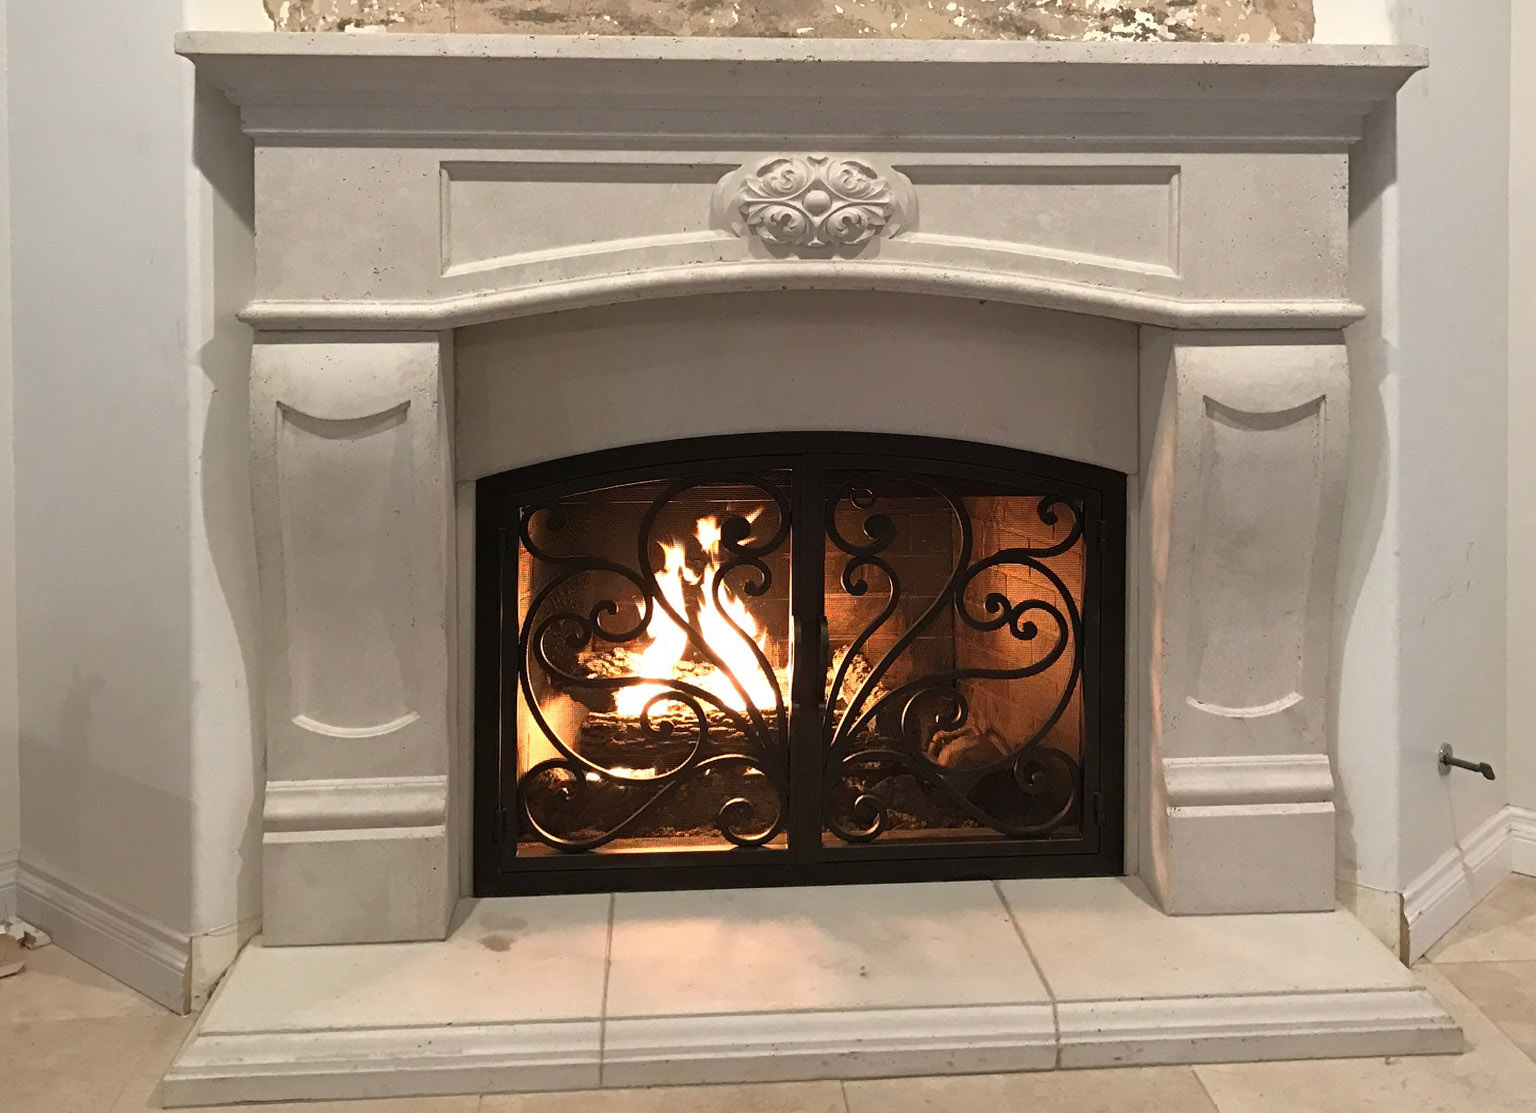 Mt202 Fireplace Mantels Fireplace Surrounds Iron Fireplace Doors And Screens In San Diego